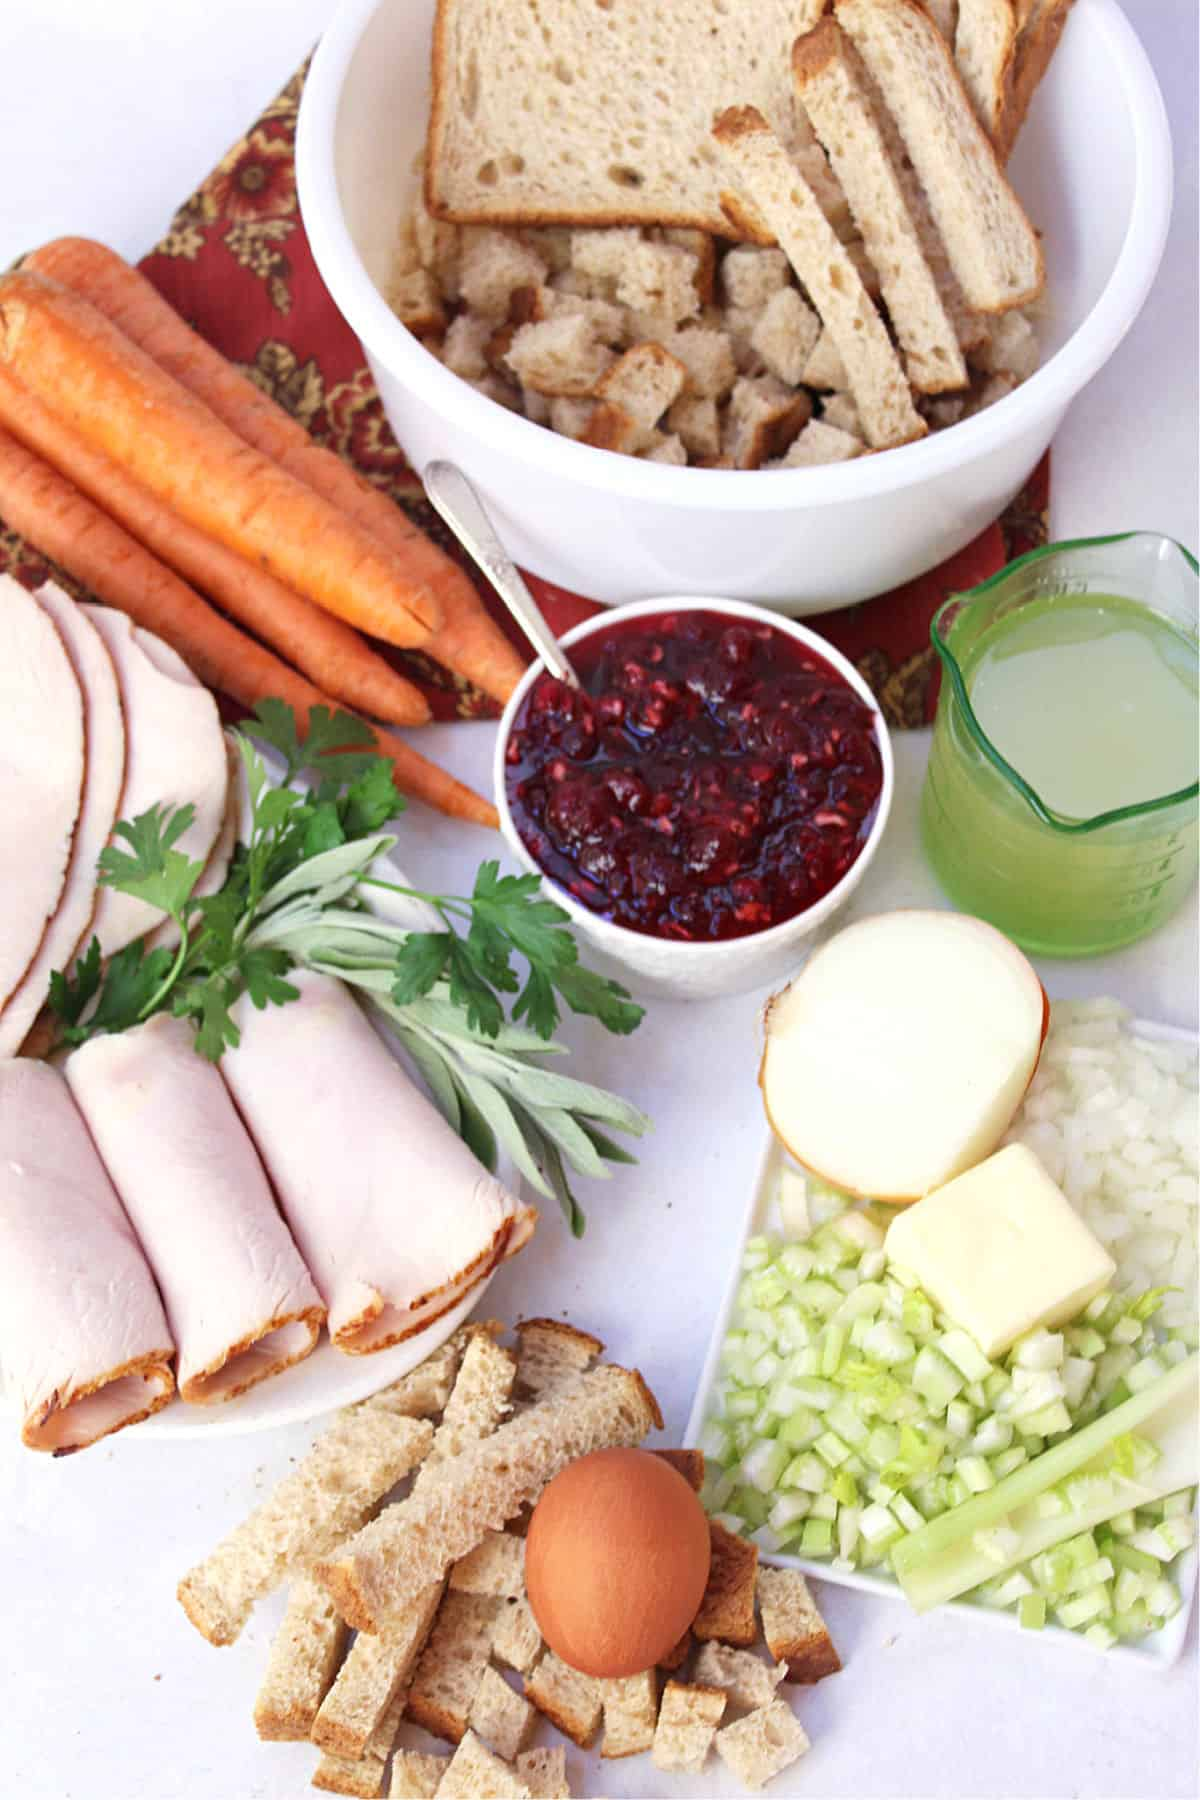 ingredients to make turkey roll-ups